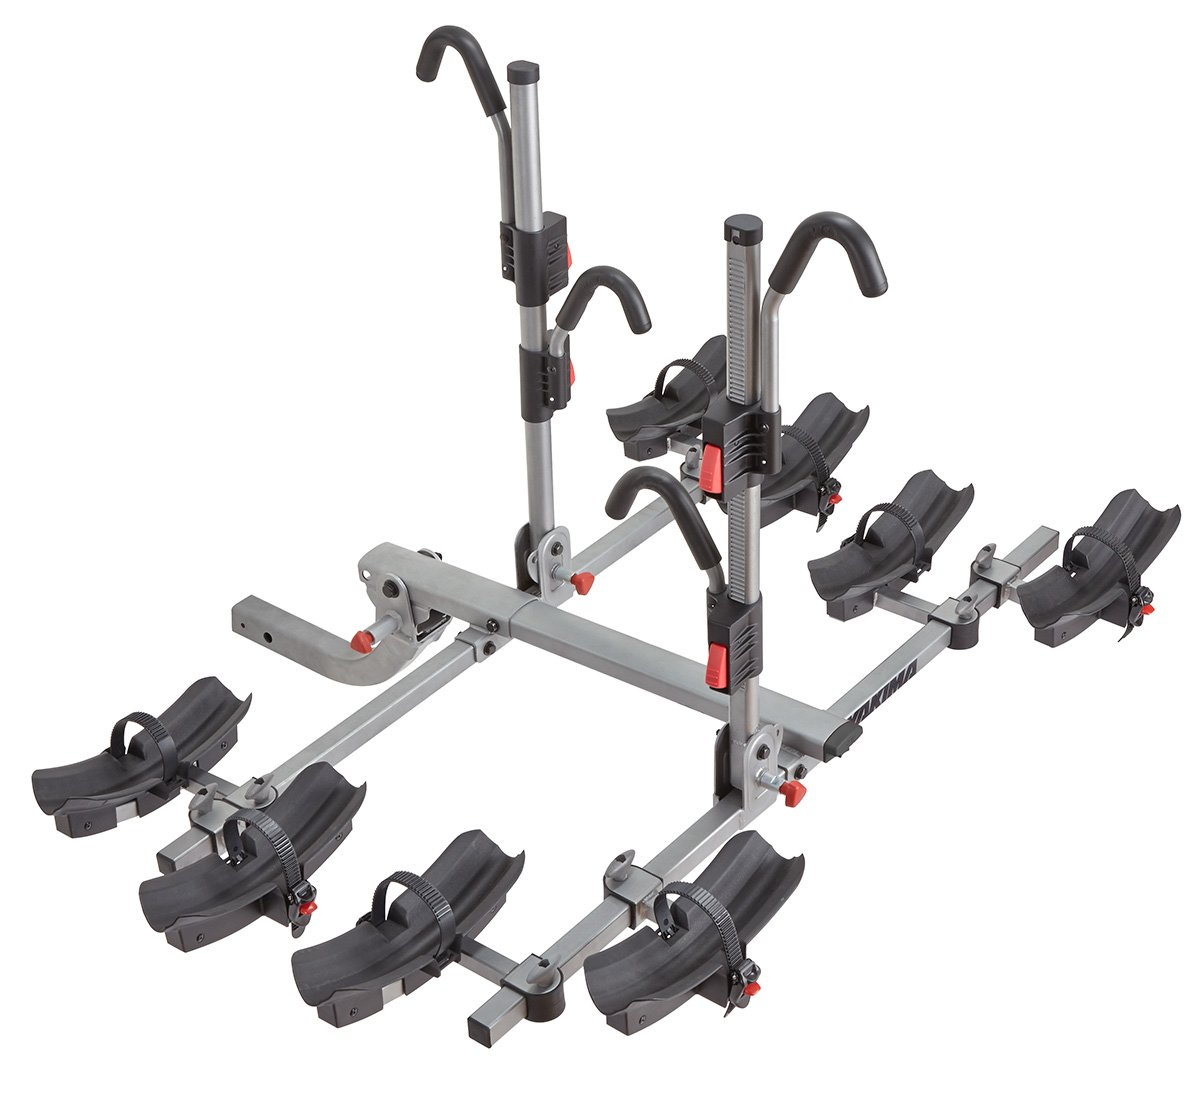 buy rack hitch rider sport racks products bike